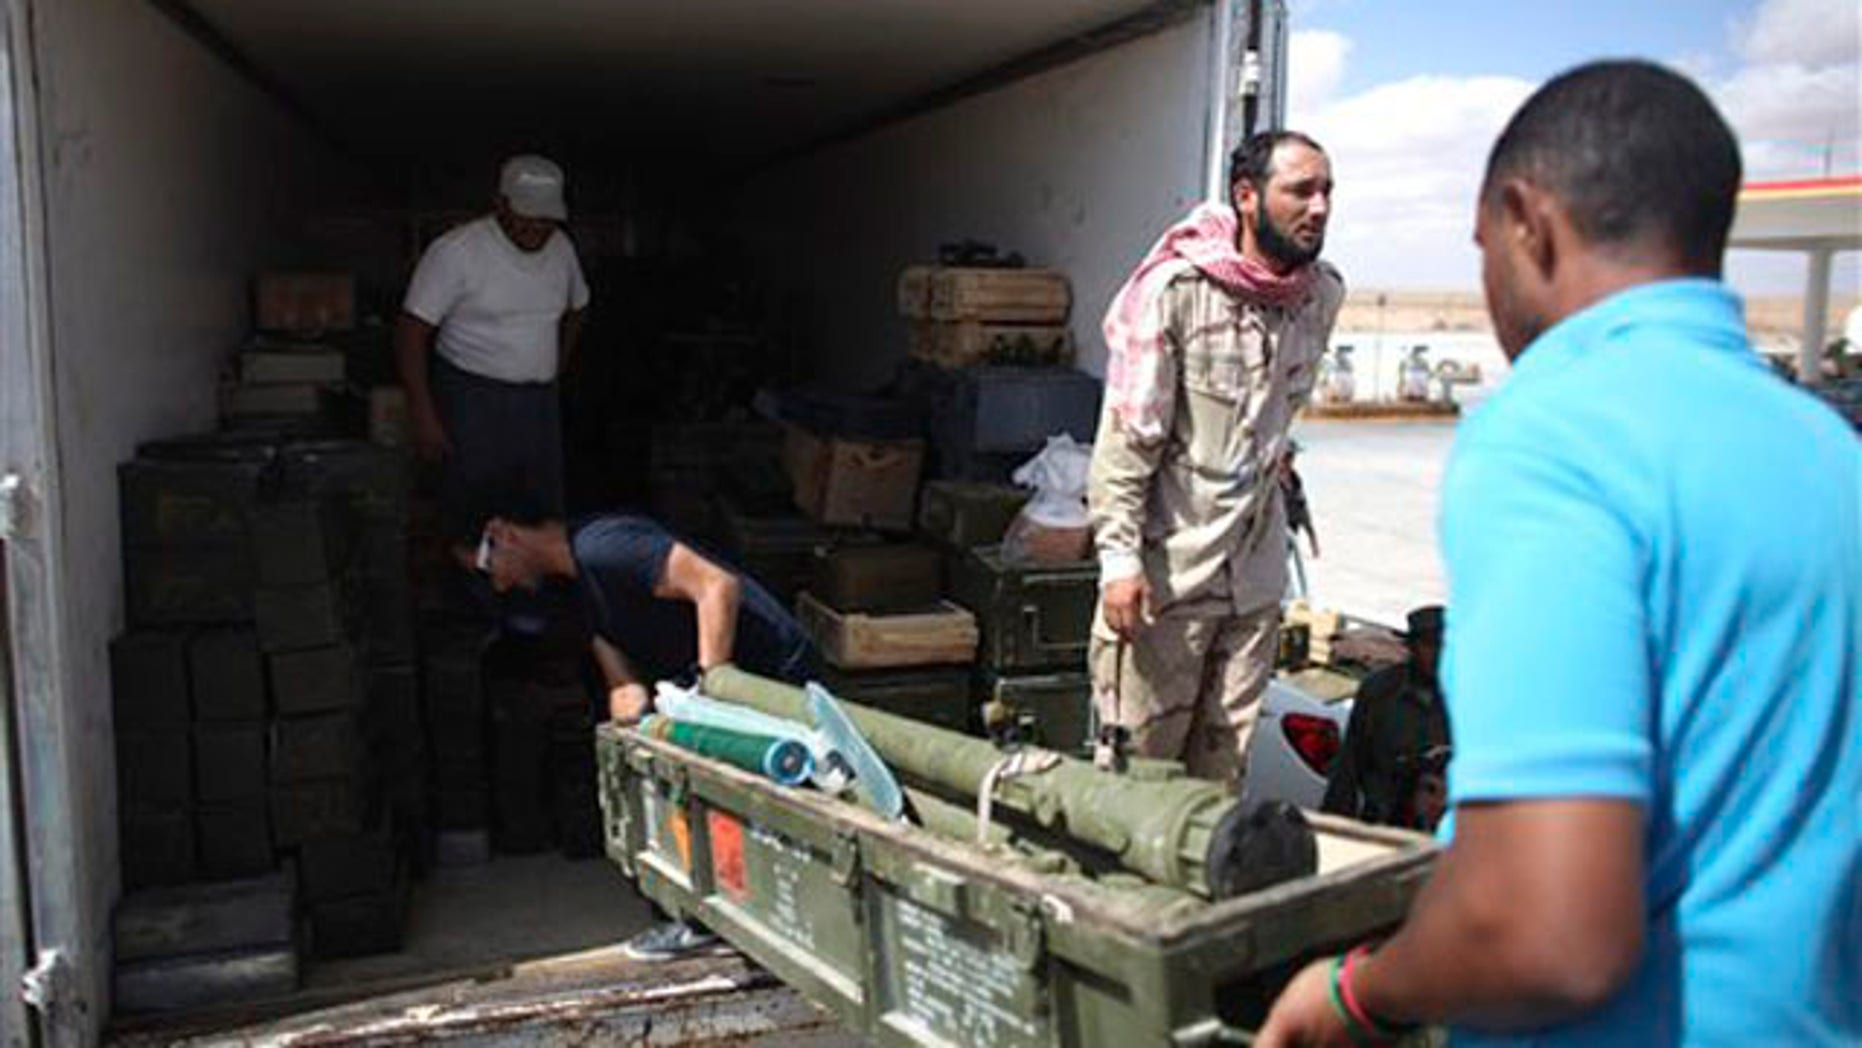 Rebels unload ammunition from a truck in Wish Tata, Libya, Friday, Sept. 9, 2011.